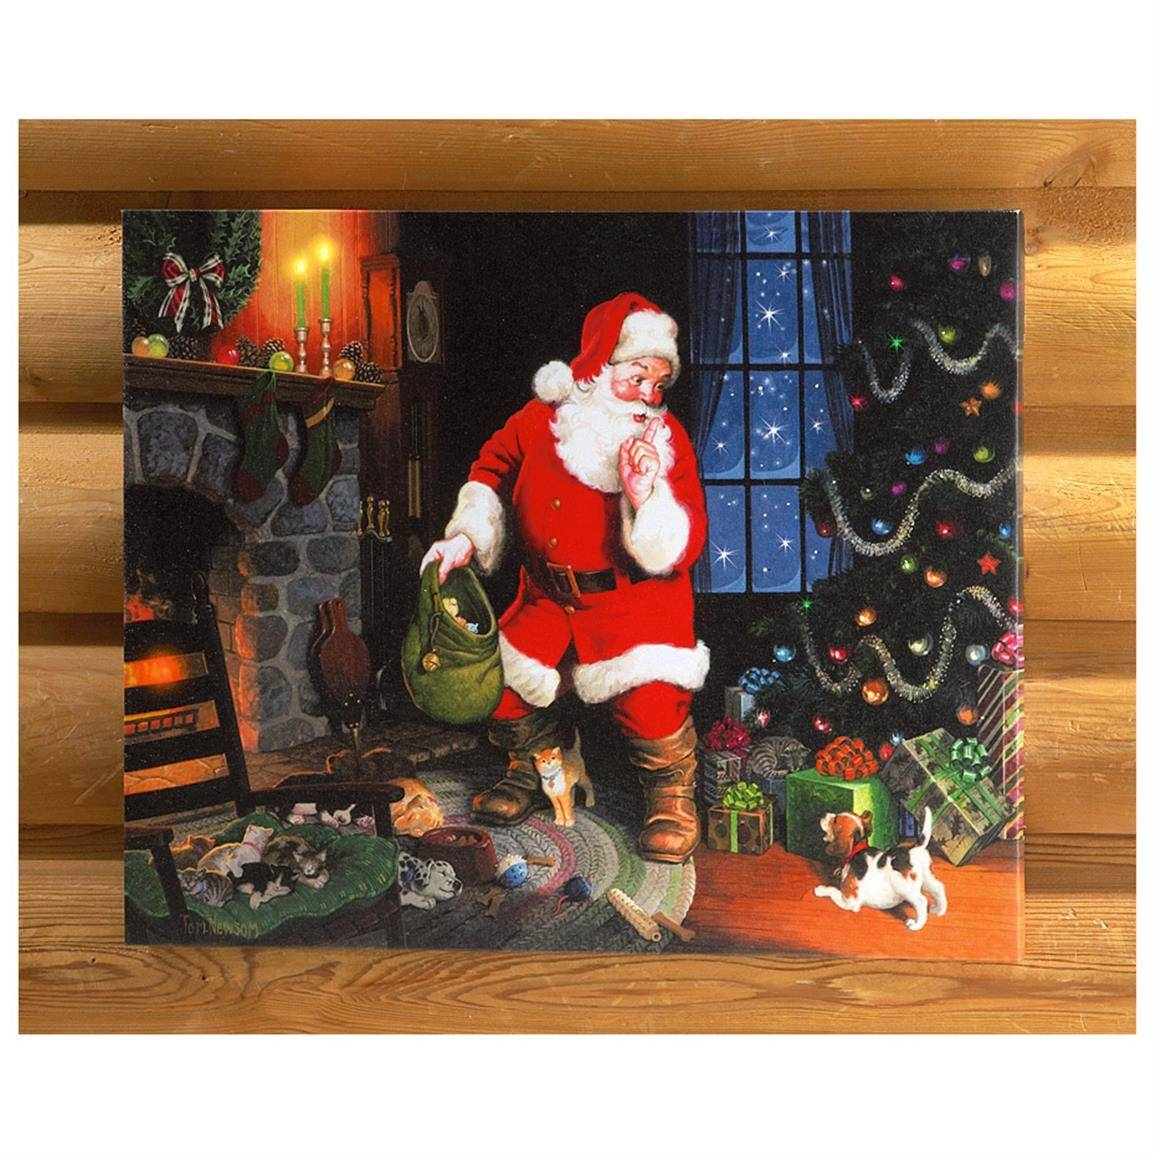 Canvas Wrapped Christmas Wall Art – 616310, Seasonal Gifts At For Most Recent Seasonal Wall Art (View 16 of 20)